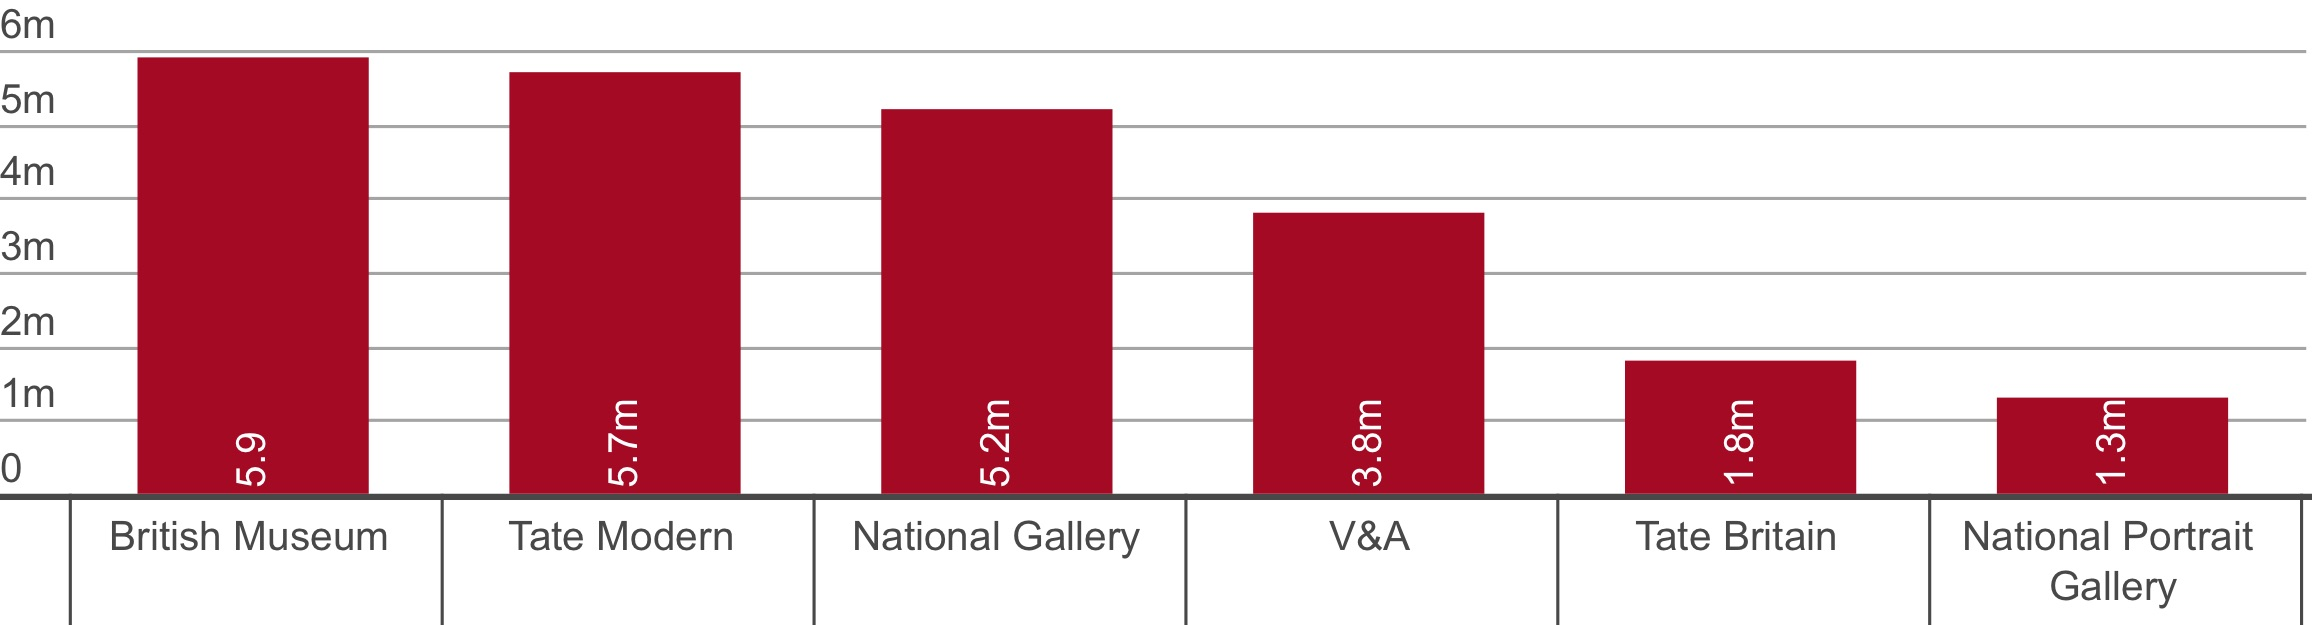 Evolution of the attendance for largest British museums